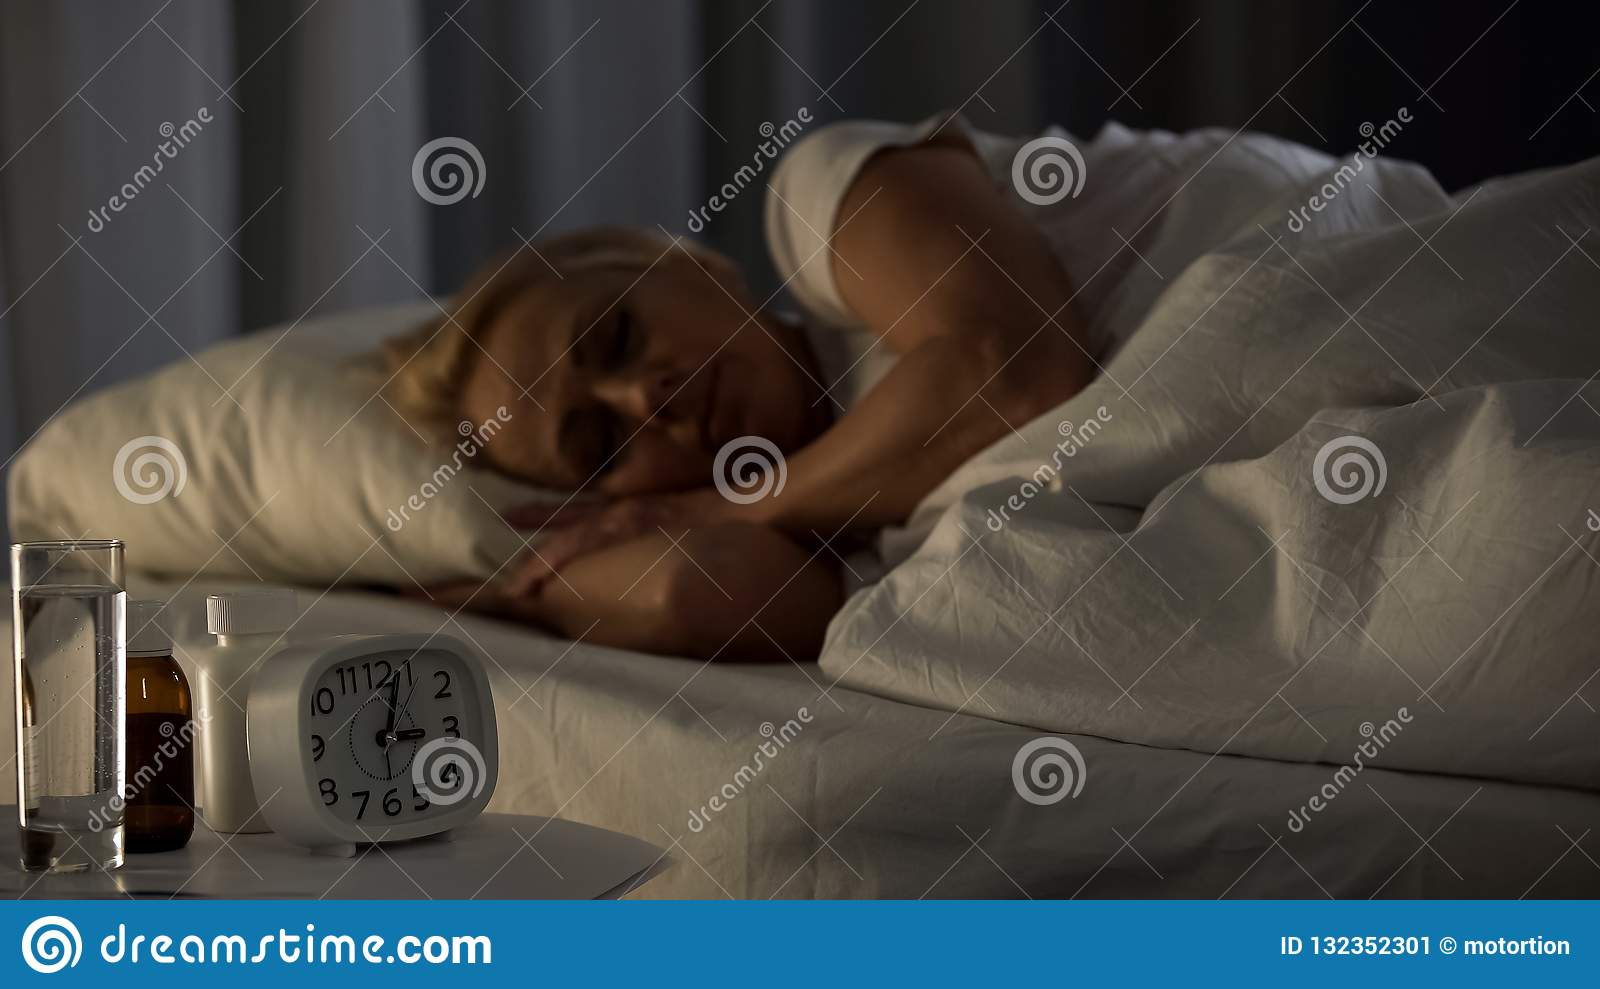 Middle-aged sick lady sleeping with pills and water glass on table, health